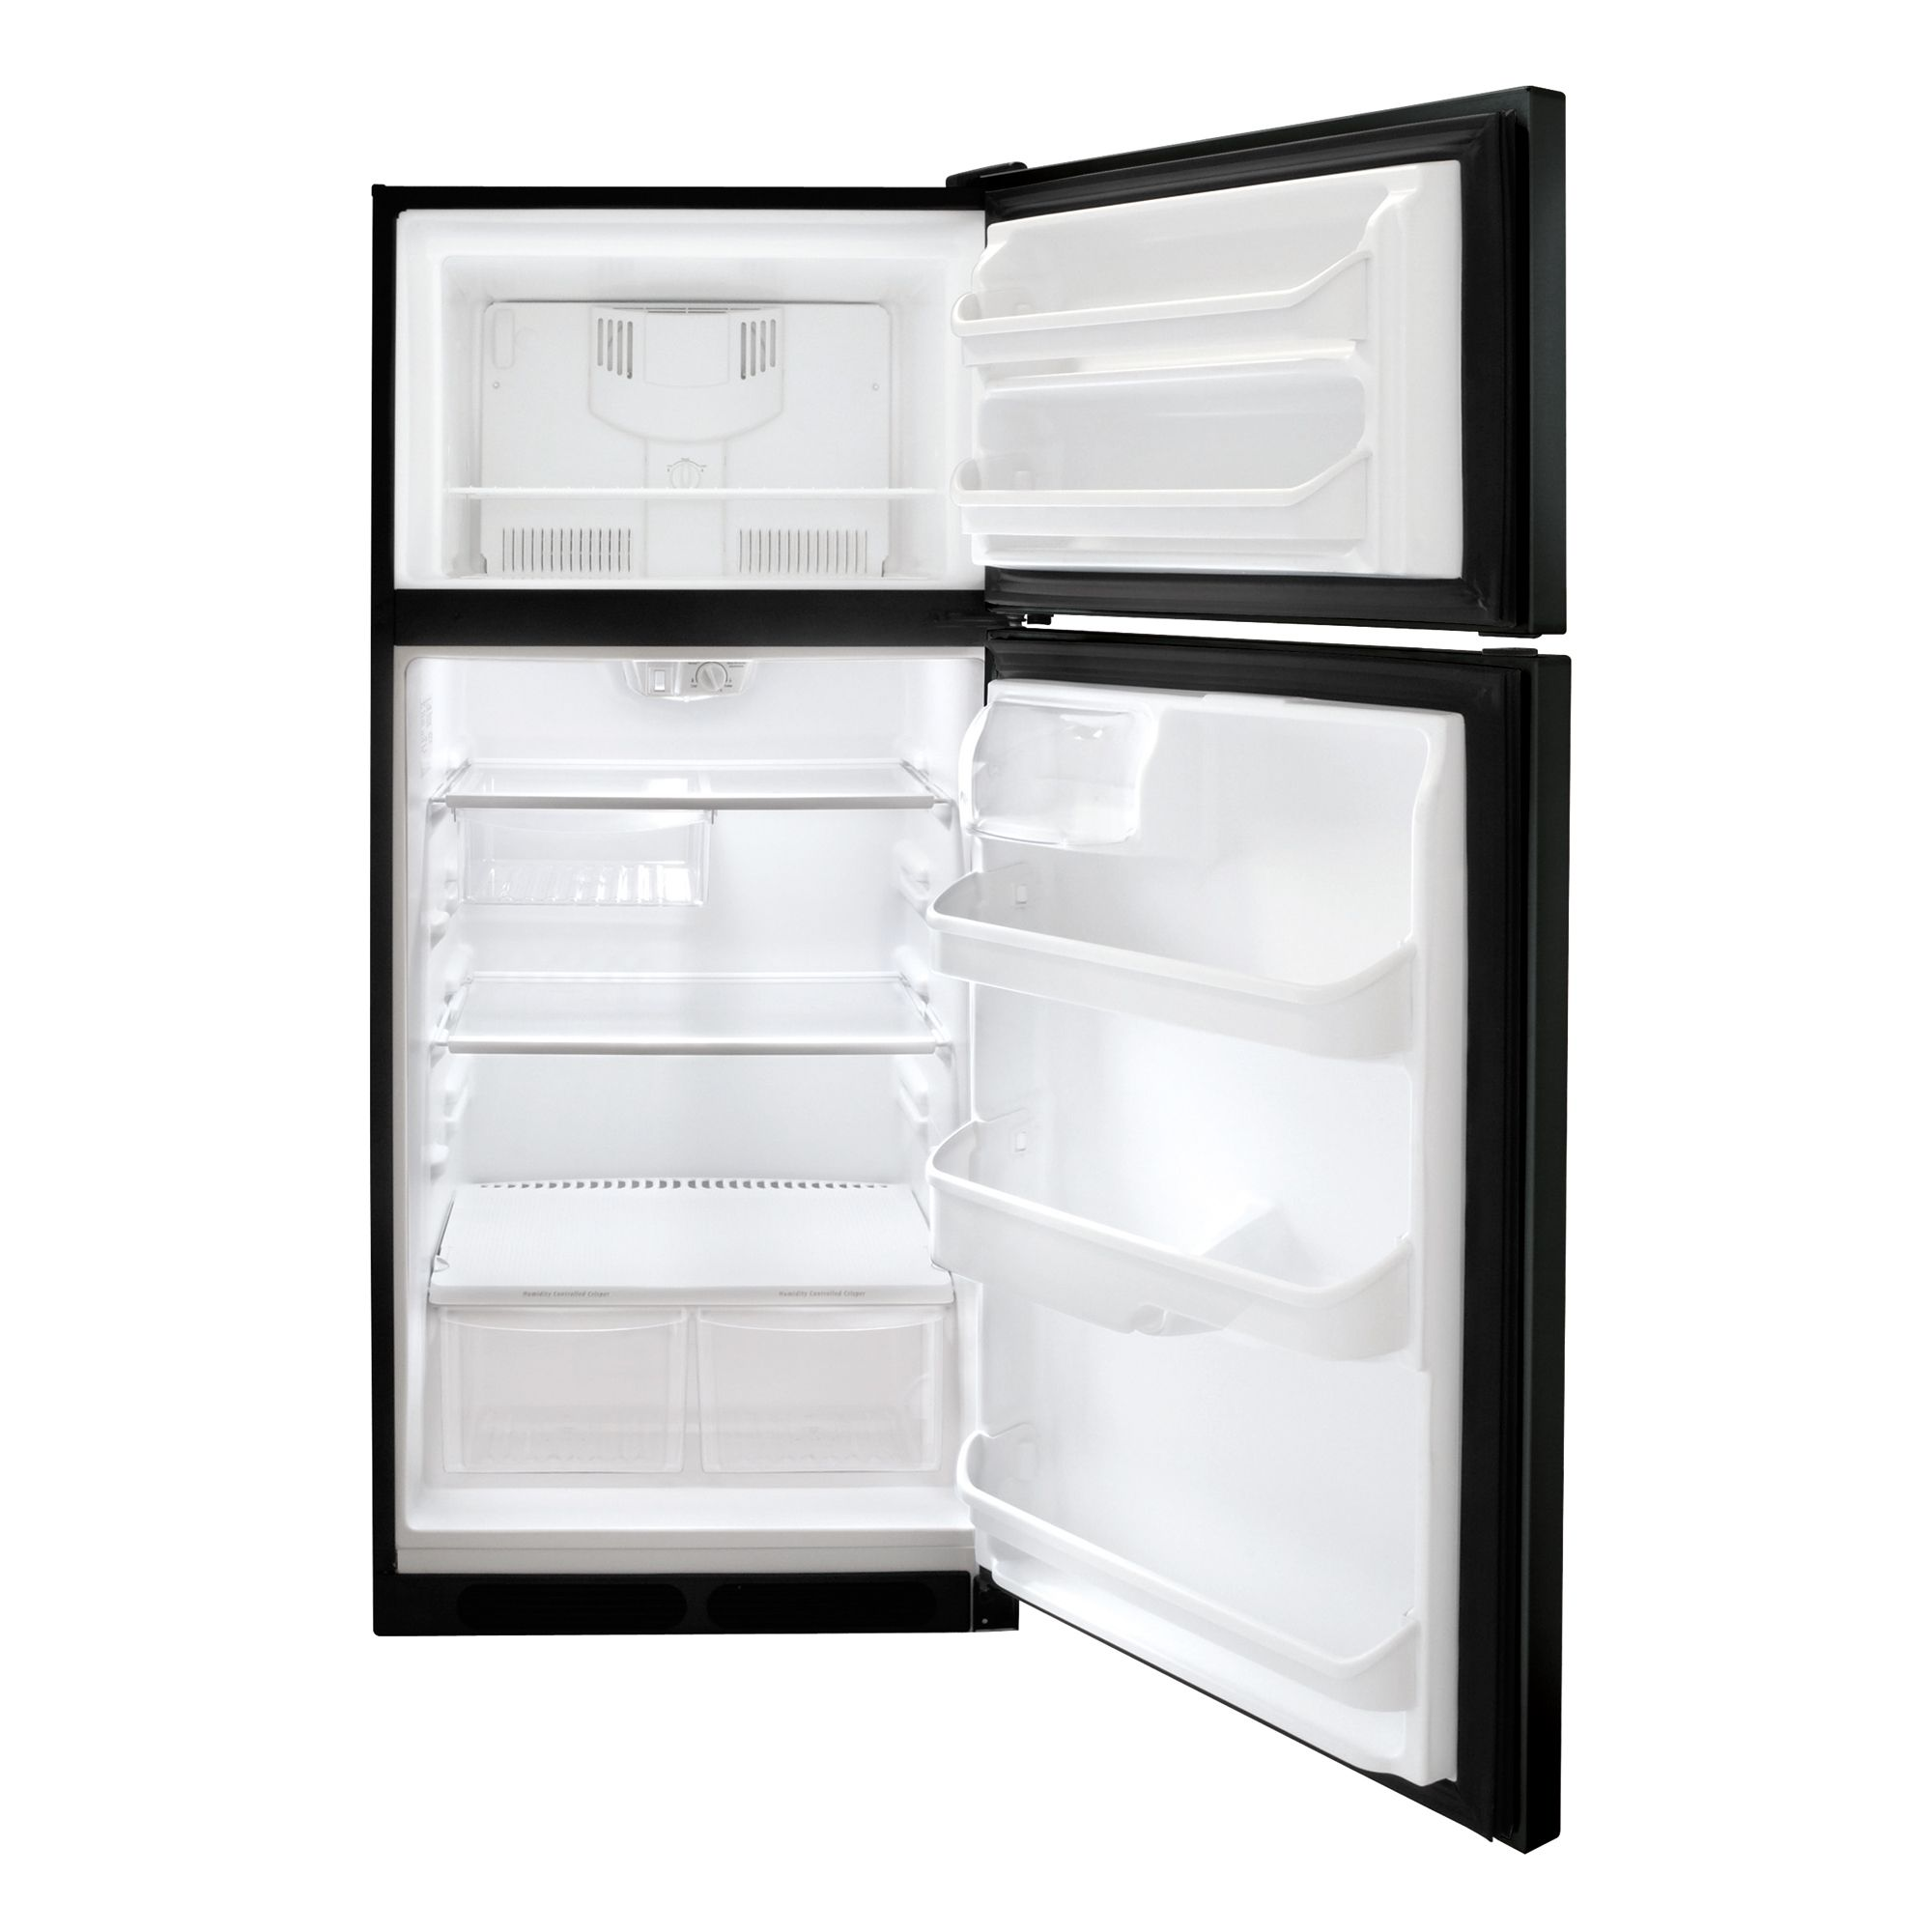 Frigidaire 16.5 cu. ft. Top-Freezer Refrigerator